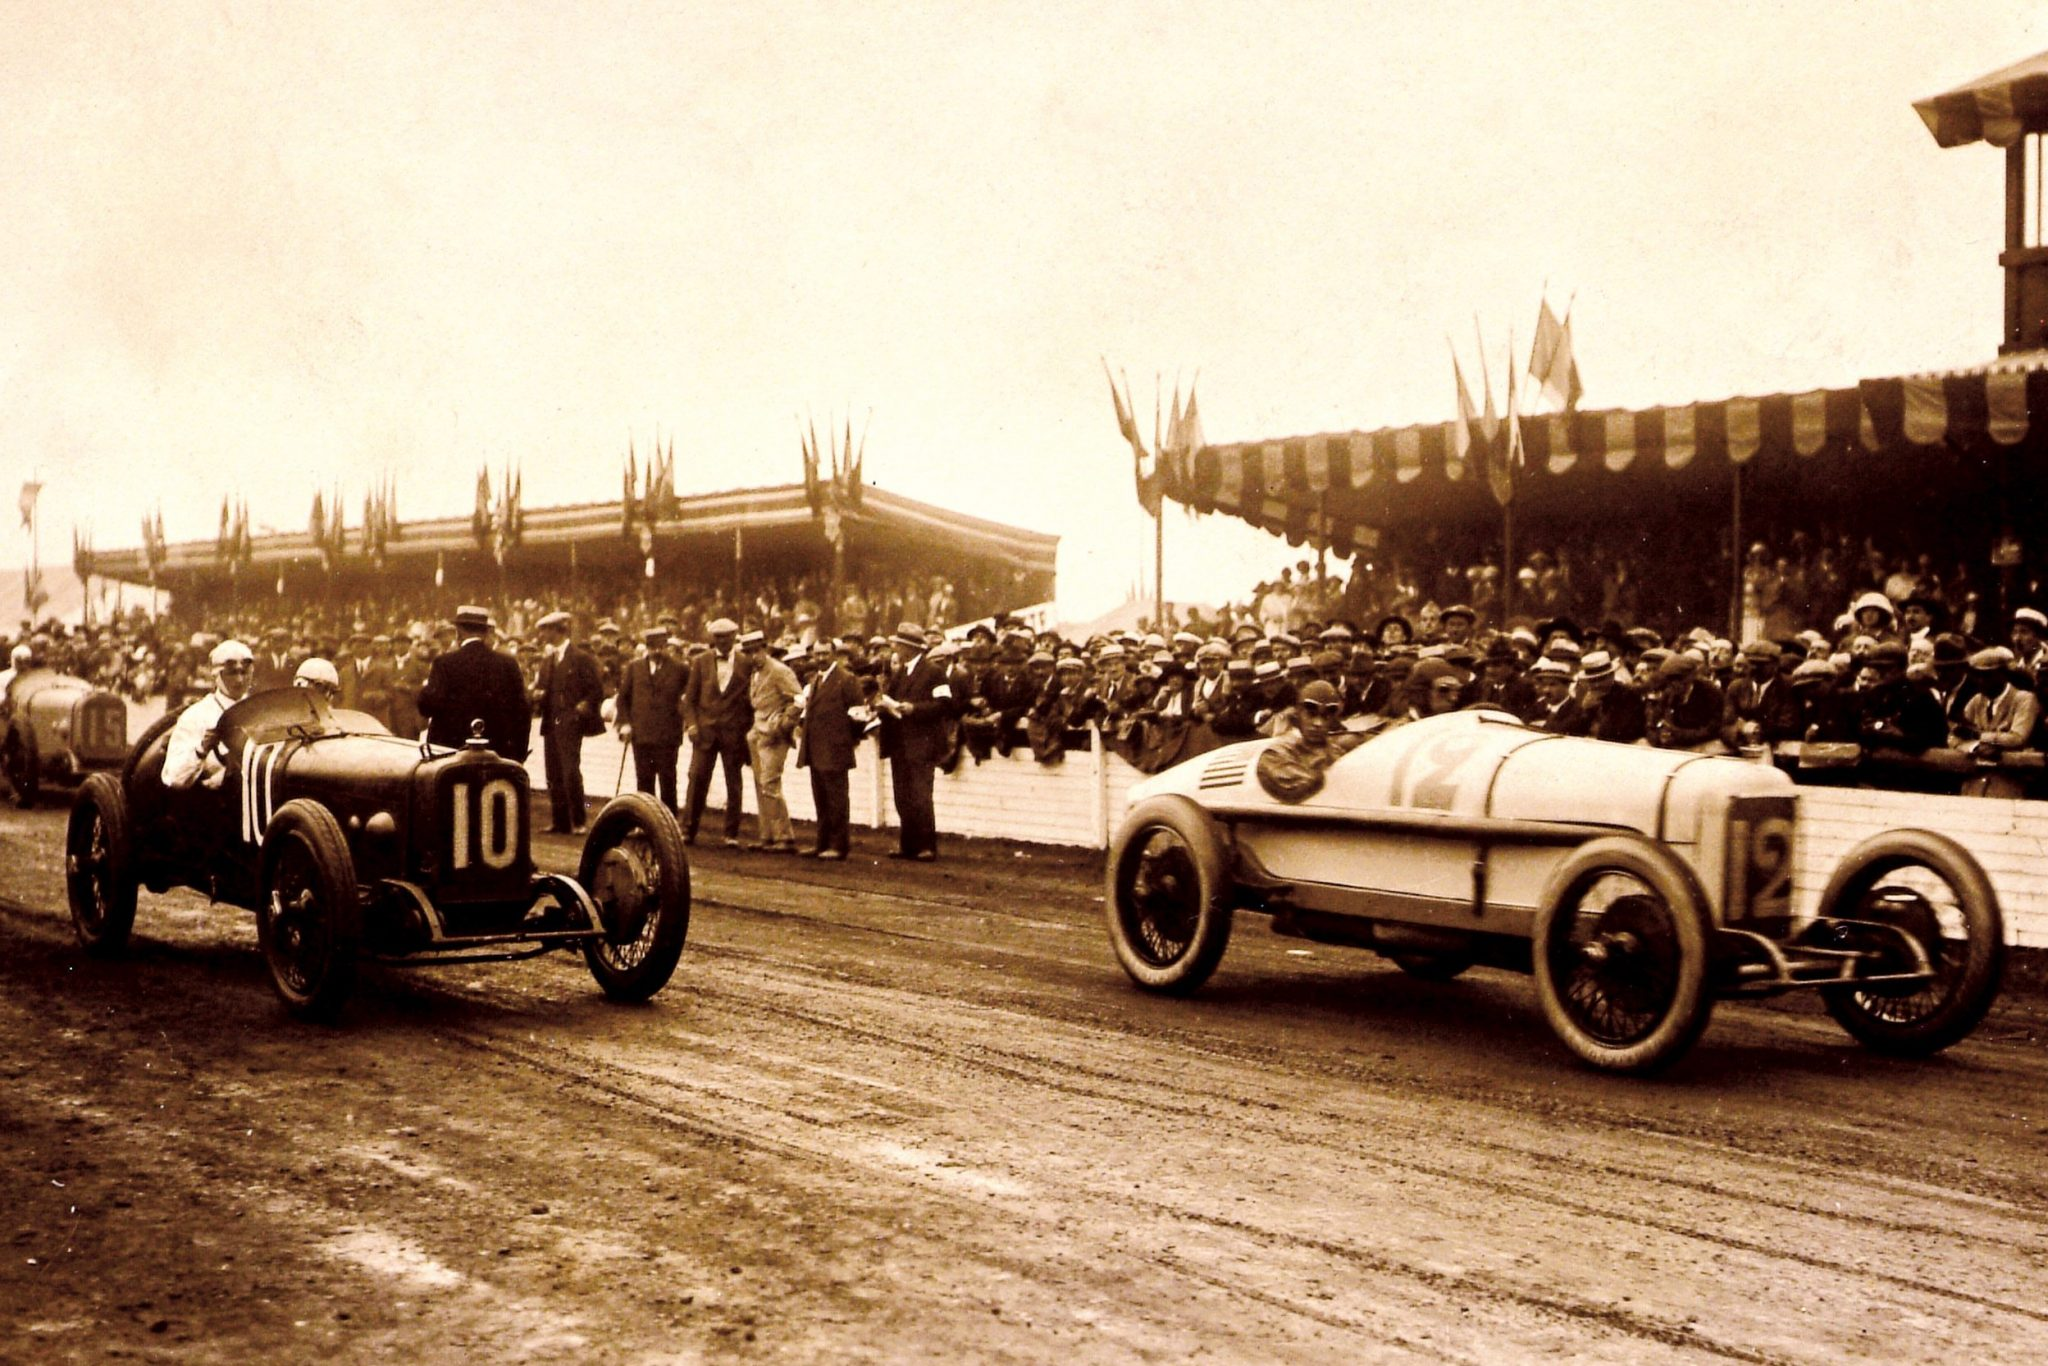 In 1921 Fred and Augie set their sights even higher and sent a team of cars to Le Mans to race in the French Grand Prix. In an epic race that saw Duesenberg and driver Jimmy Murphy triumph, the battle was between Murphy and Ballot, with the renowned French race car driven by none other than Ralph DePalma.